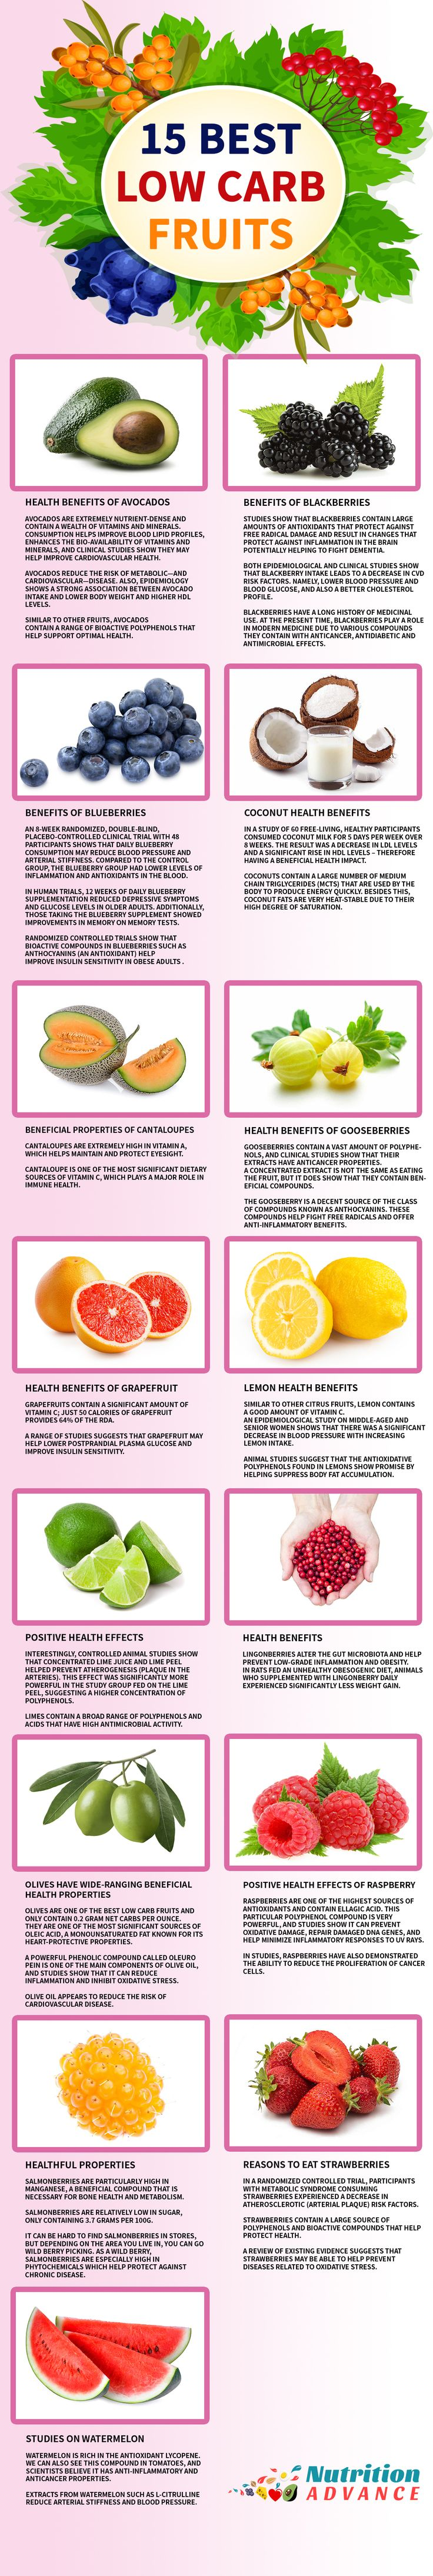 15 Best Low Carb Fruits: What are some of the best fruits for a keto or low carb diet? This infographic presents 15 of the foods lowest in carbohydrate - per 100g. These include avocado, blackberries, blueberries, coconut, cantaloupe melon, gooseberries, grapefruit, melon, lime, lingonberries, olives, raspberry, strawberry, salmonberries, watermelon. Rememeber though, this is per 100g - so several huge slices of watermelon would not be low in carbs! You can find more details in the article…